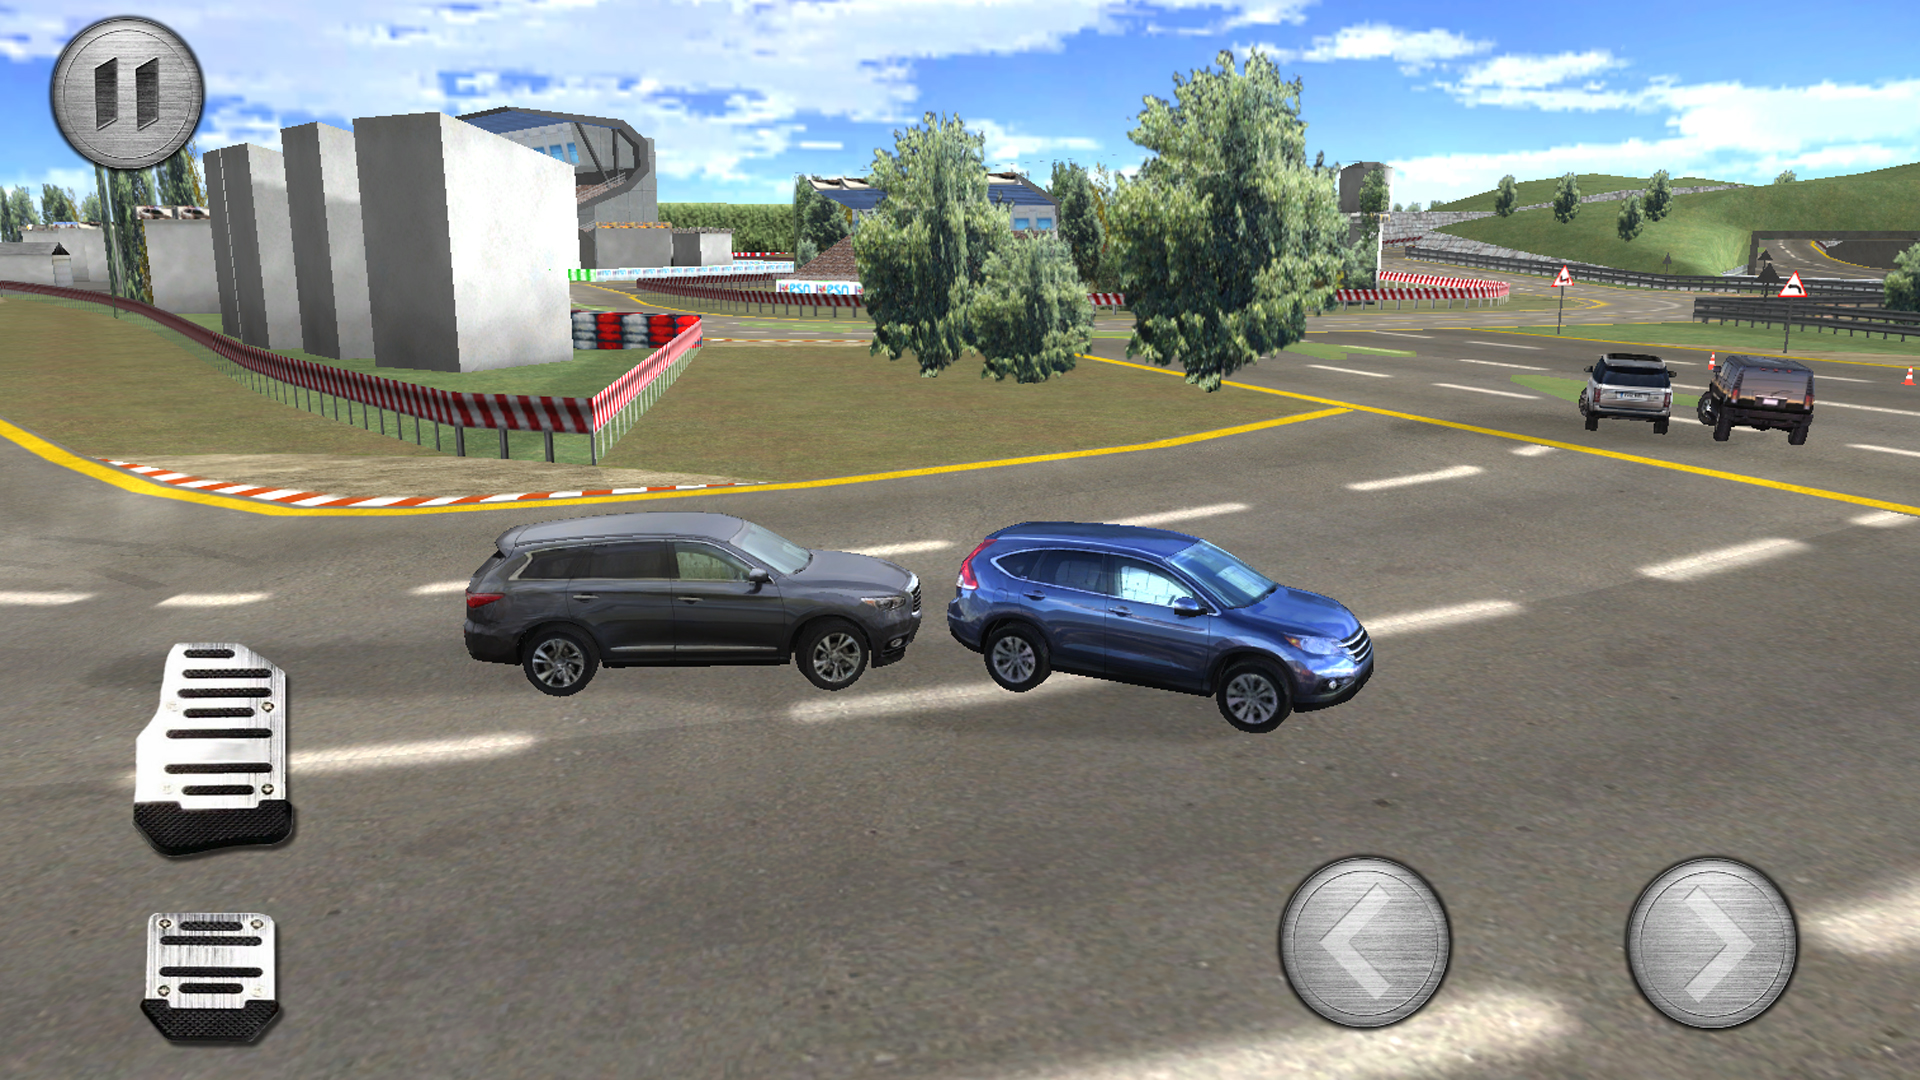 Suv Racing 3d Car Simulator Appstore For Android Cars Circuit Game Apps On Google Play